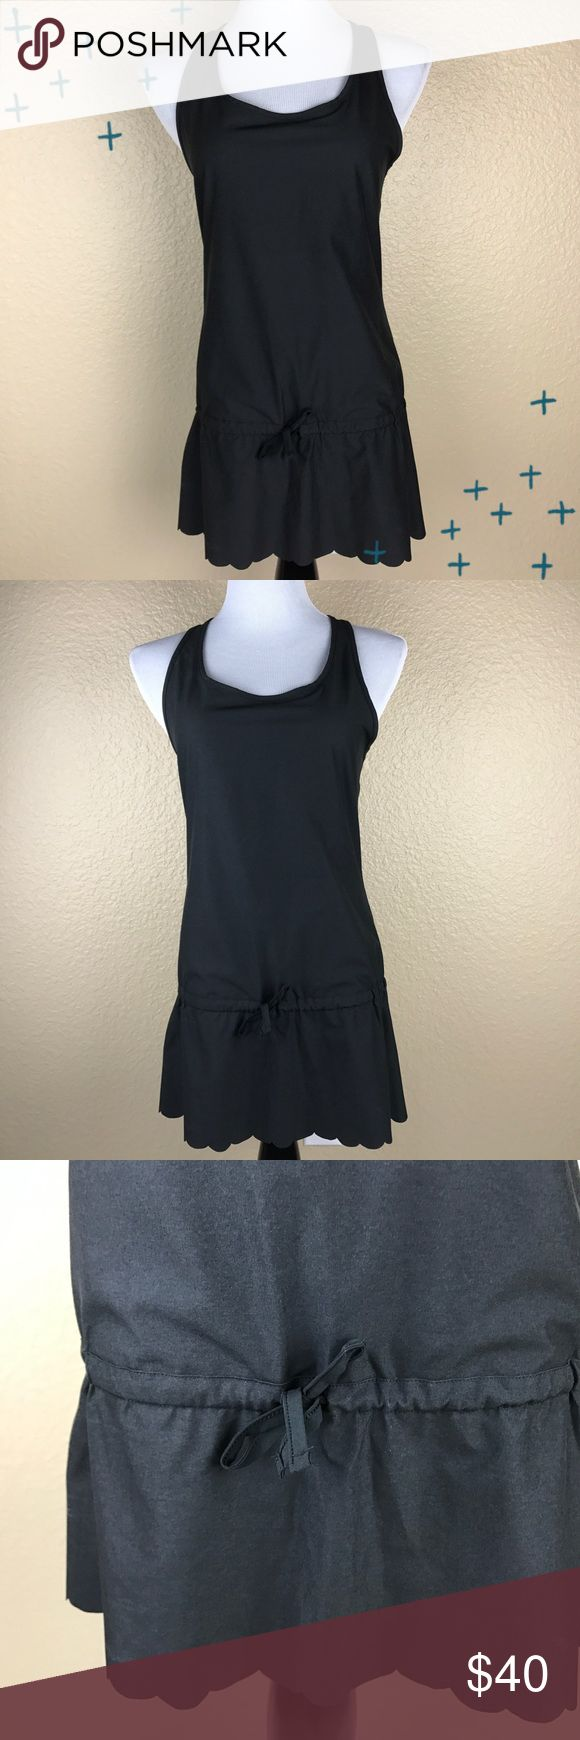 Lucy black scallop drawstring workout dress Small Lucy brand black workout tennis drawstring scallop dress. So cute and perfect for tennis or ruining errands in! Open to offers, no trades. Lucy Dresses Mini